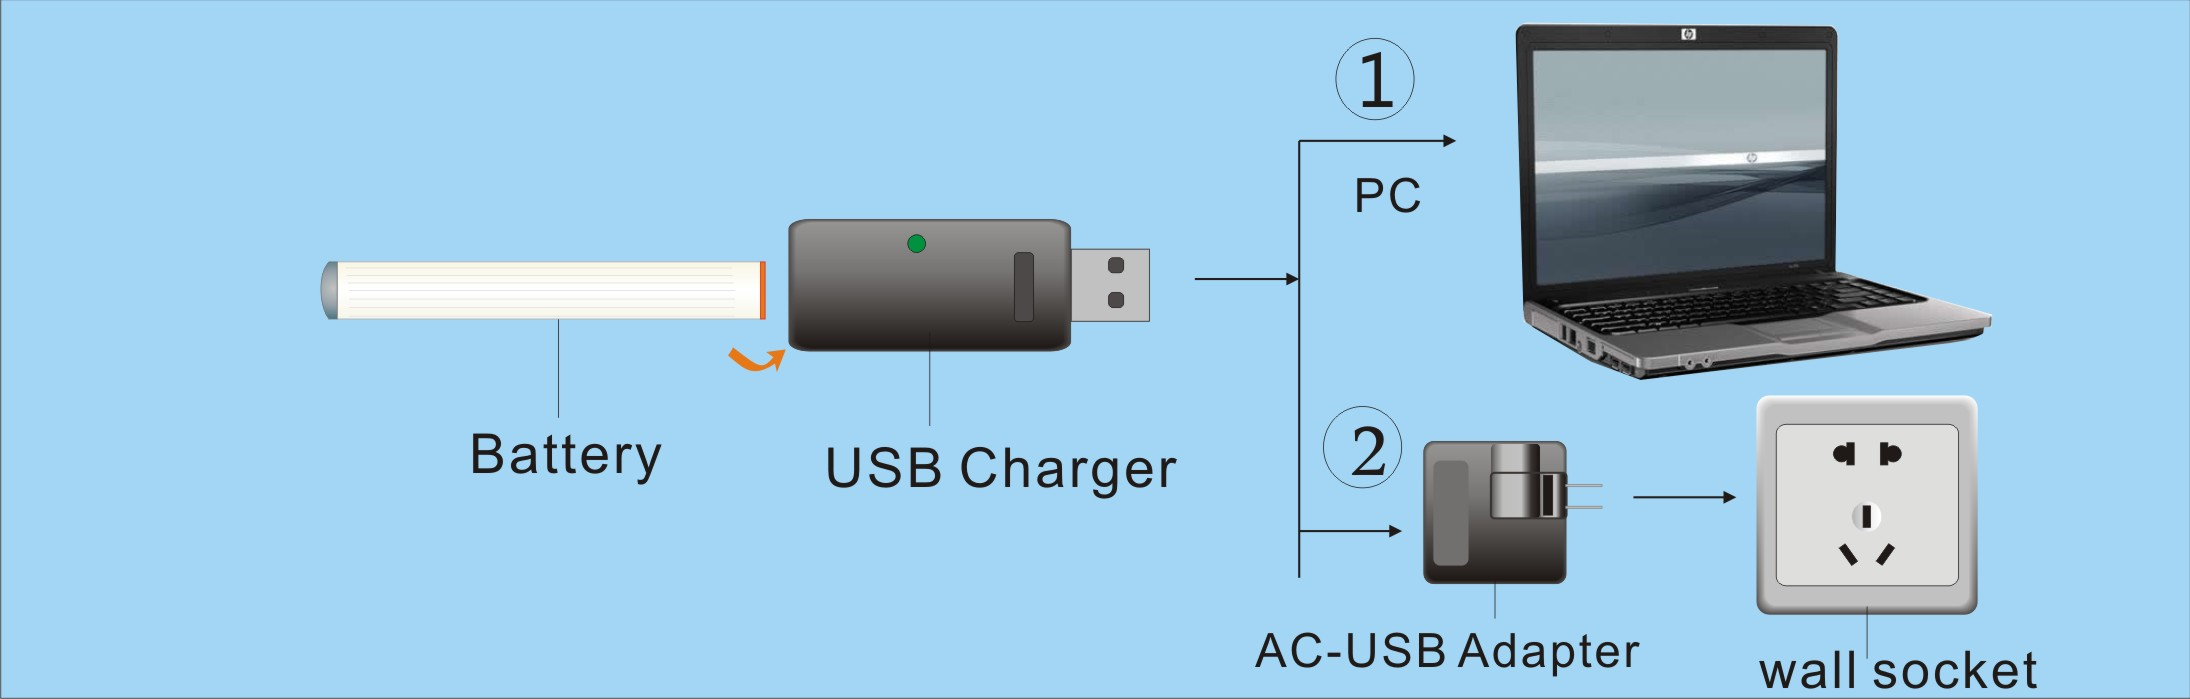 How to use 103 USB charger